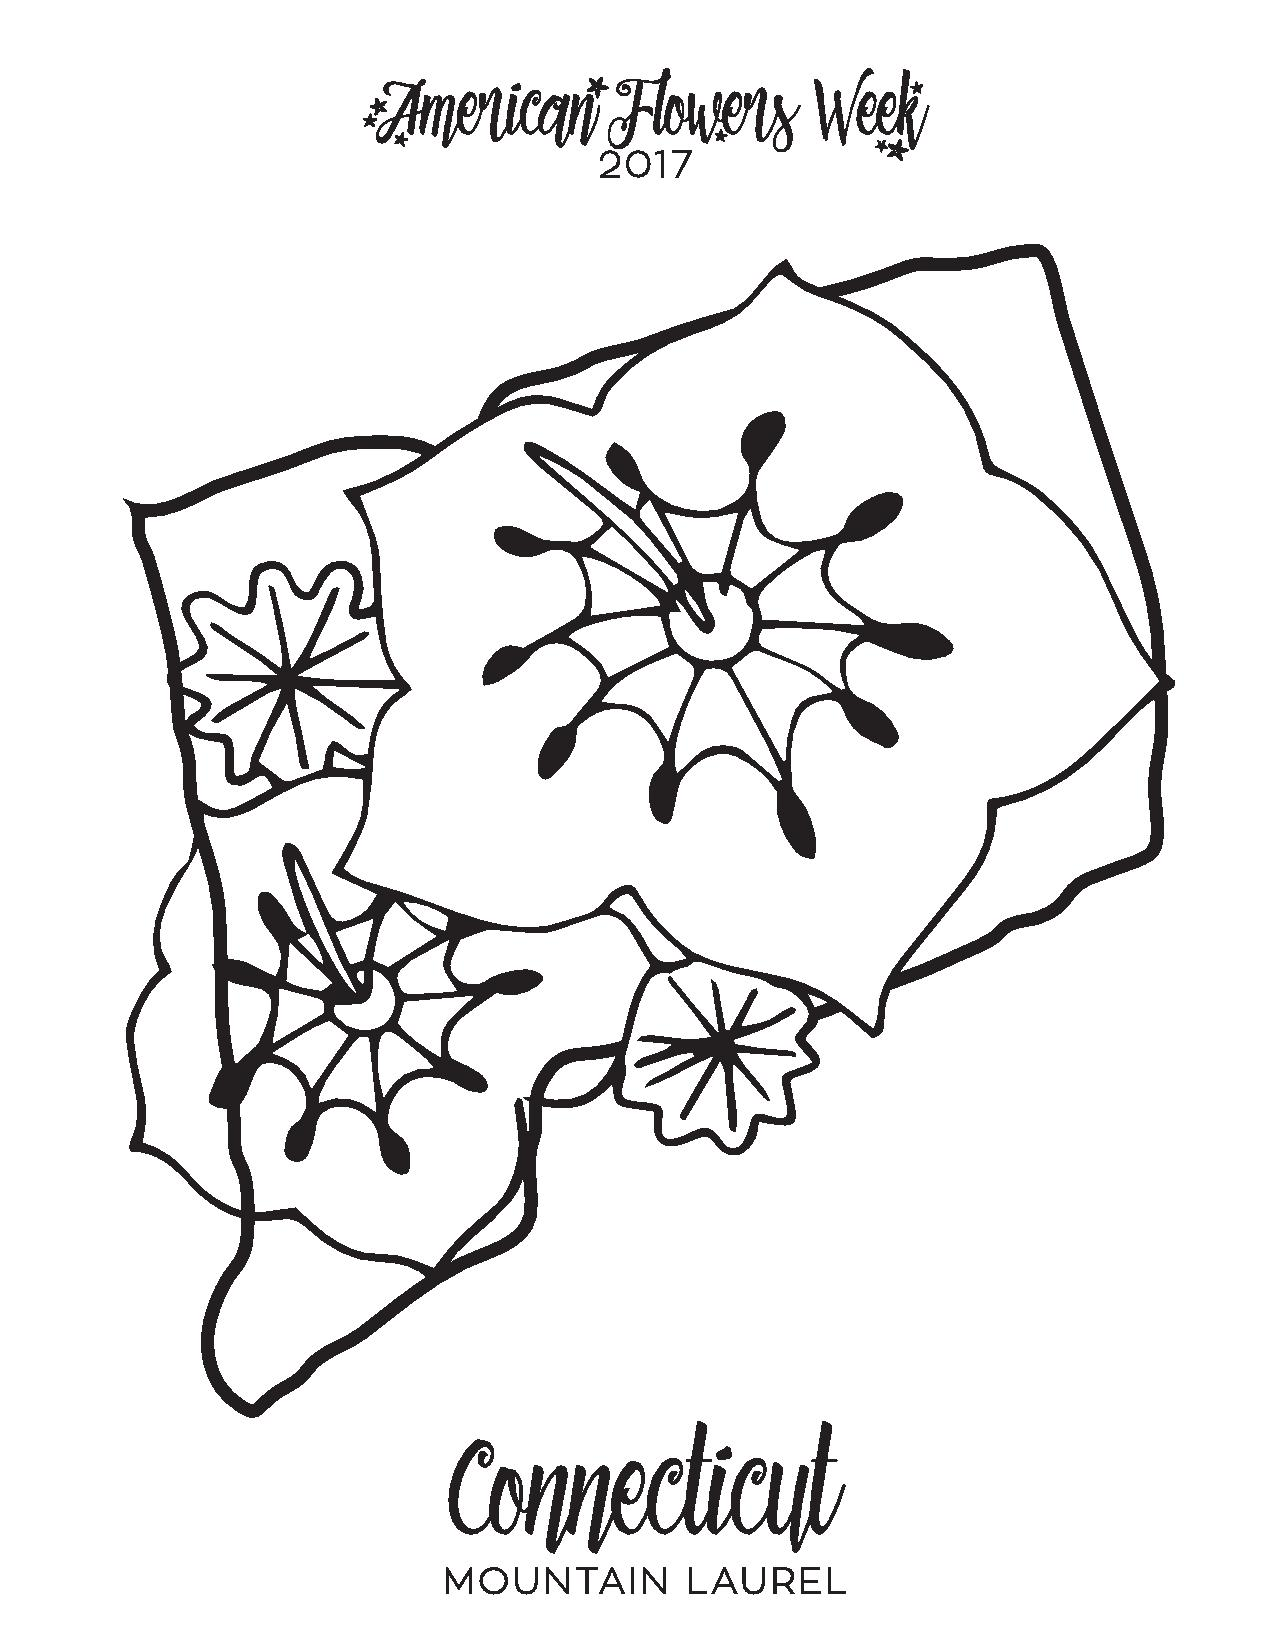 state flower coloring pages. Connecticut Mountain Laurel  PDF 50 State Flowers Free Coloring Pages american flowers week